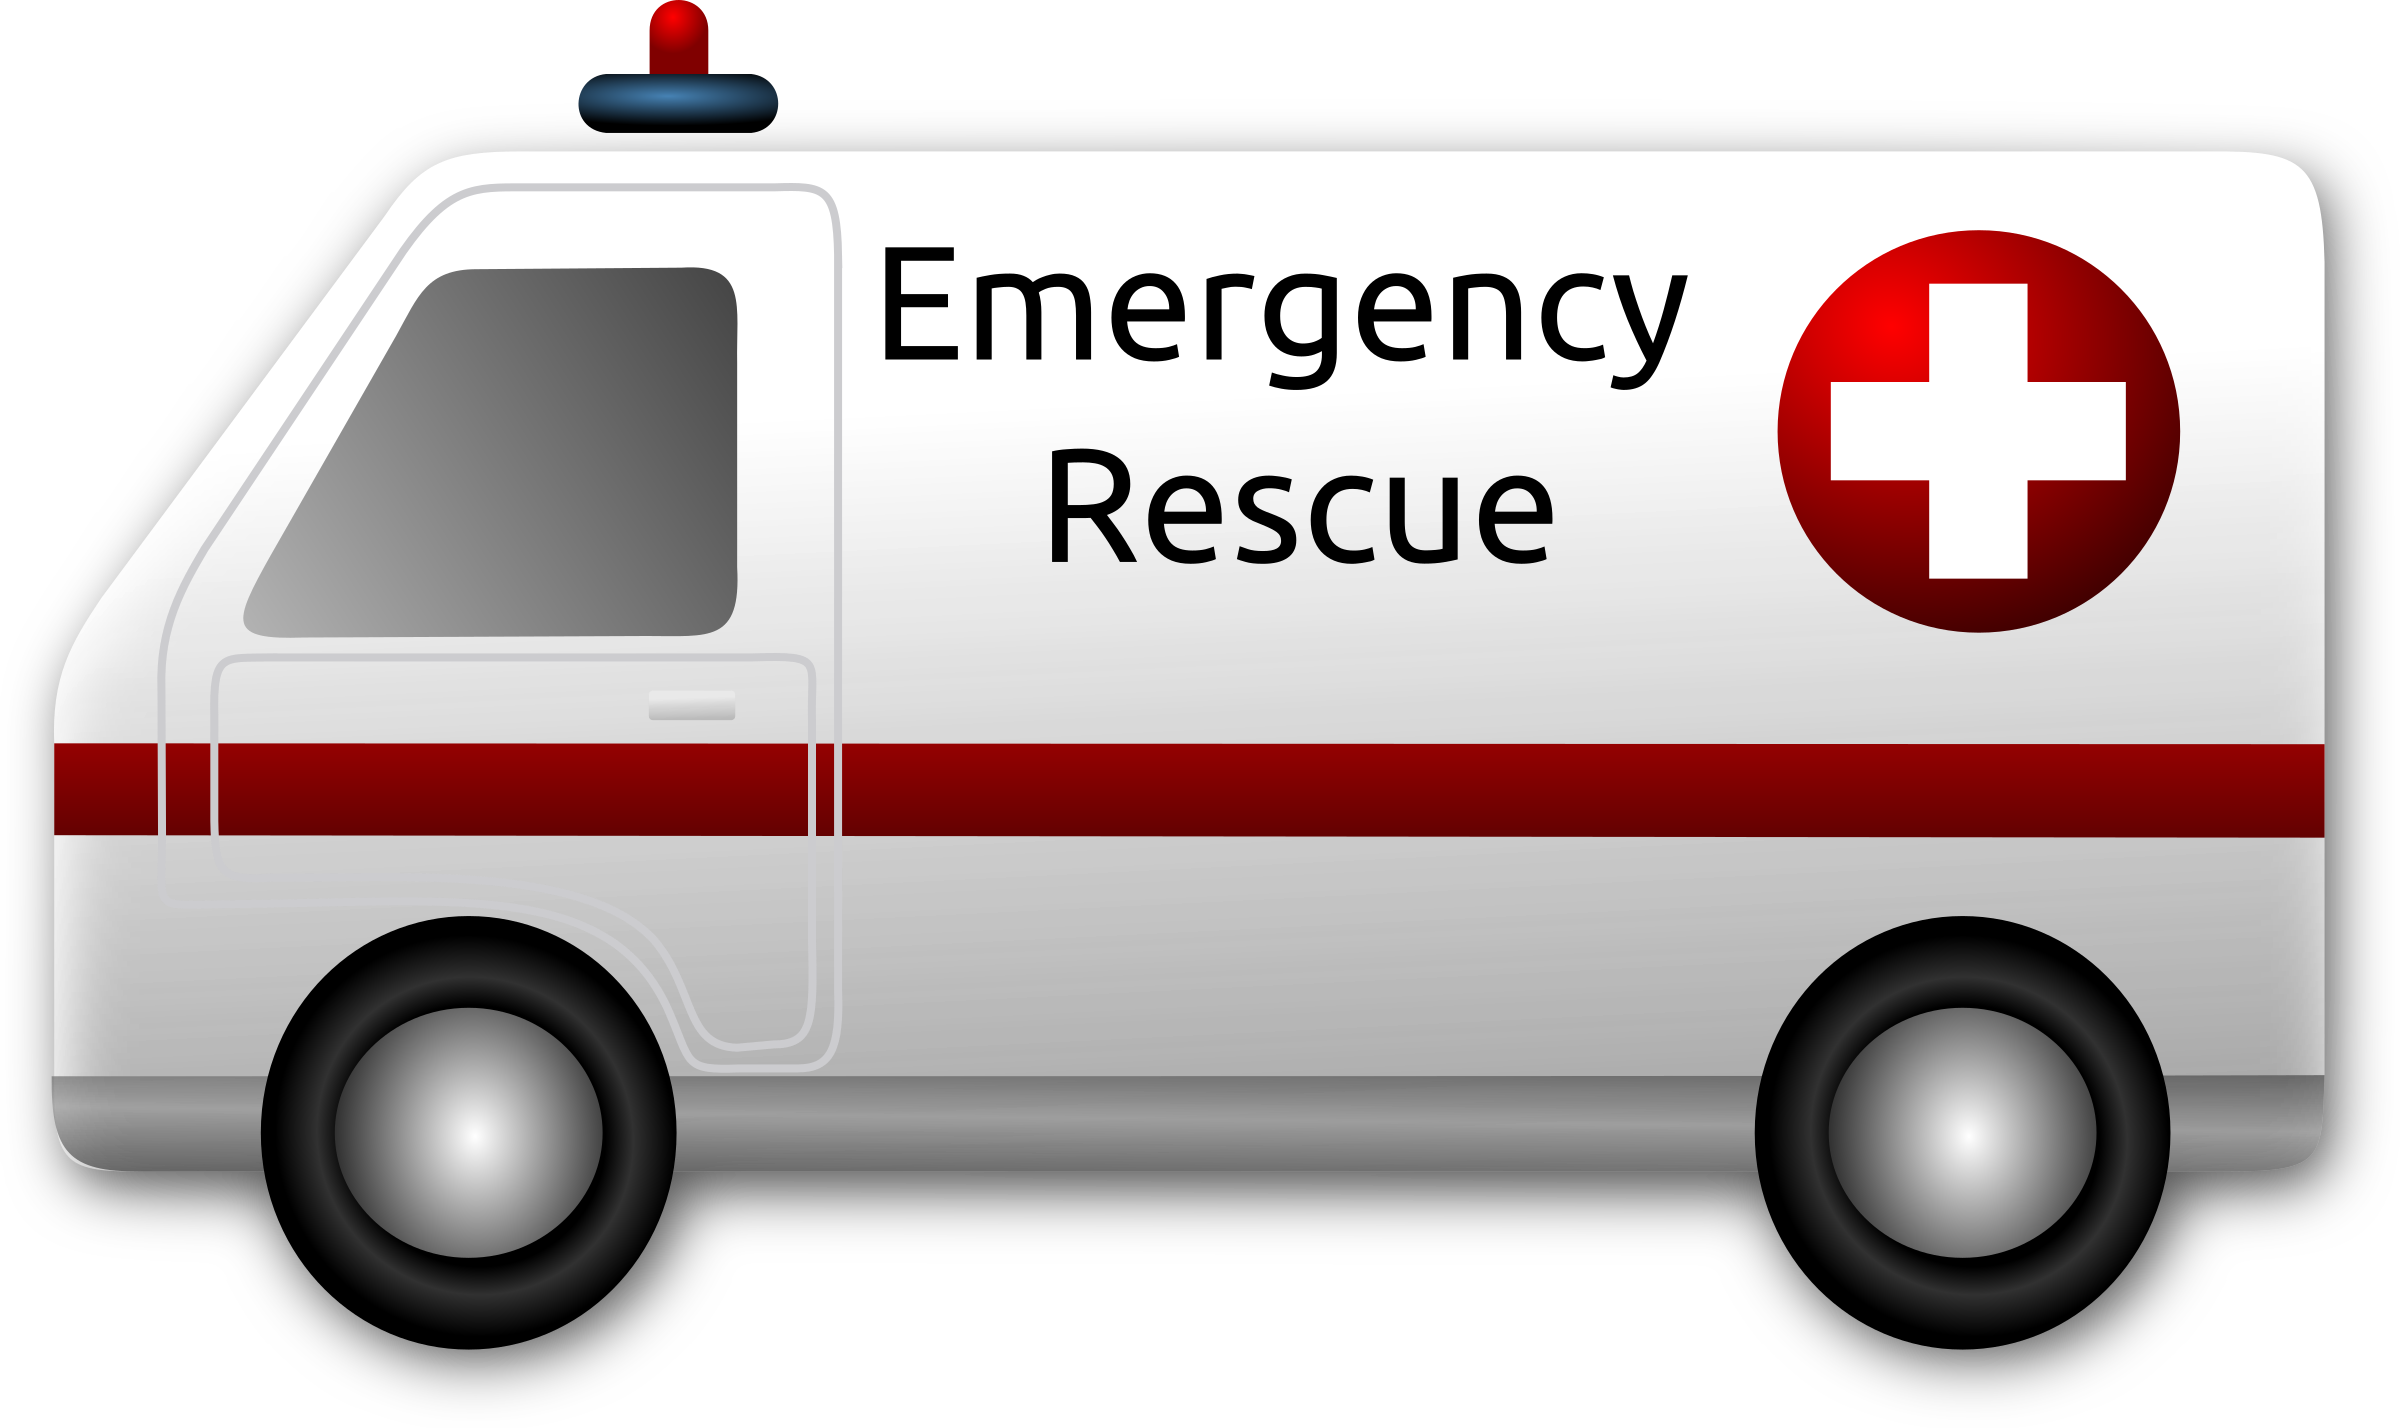 Minivan clipart transparent background. Ambulance icon web icons